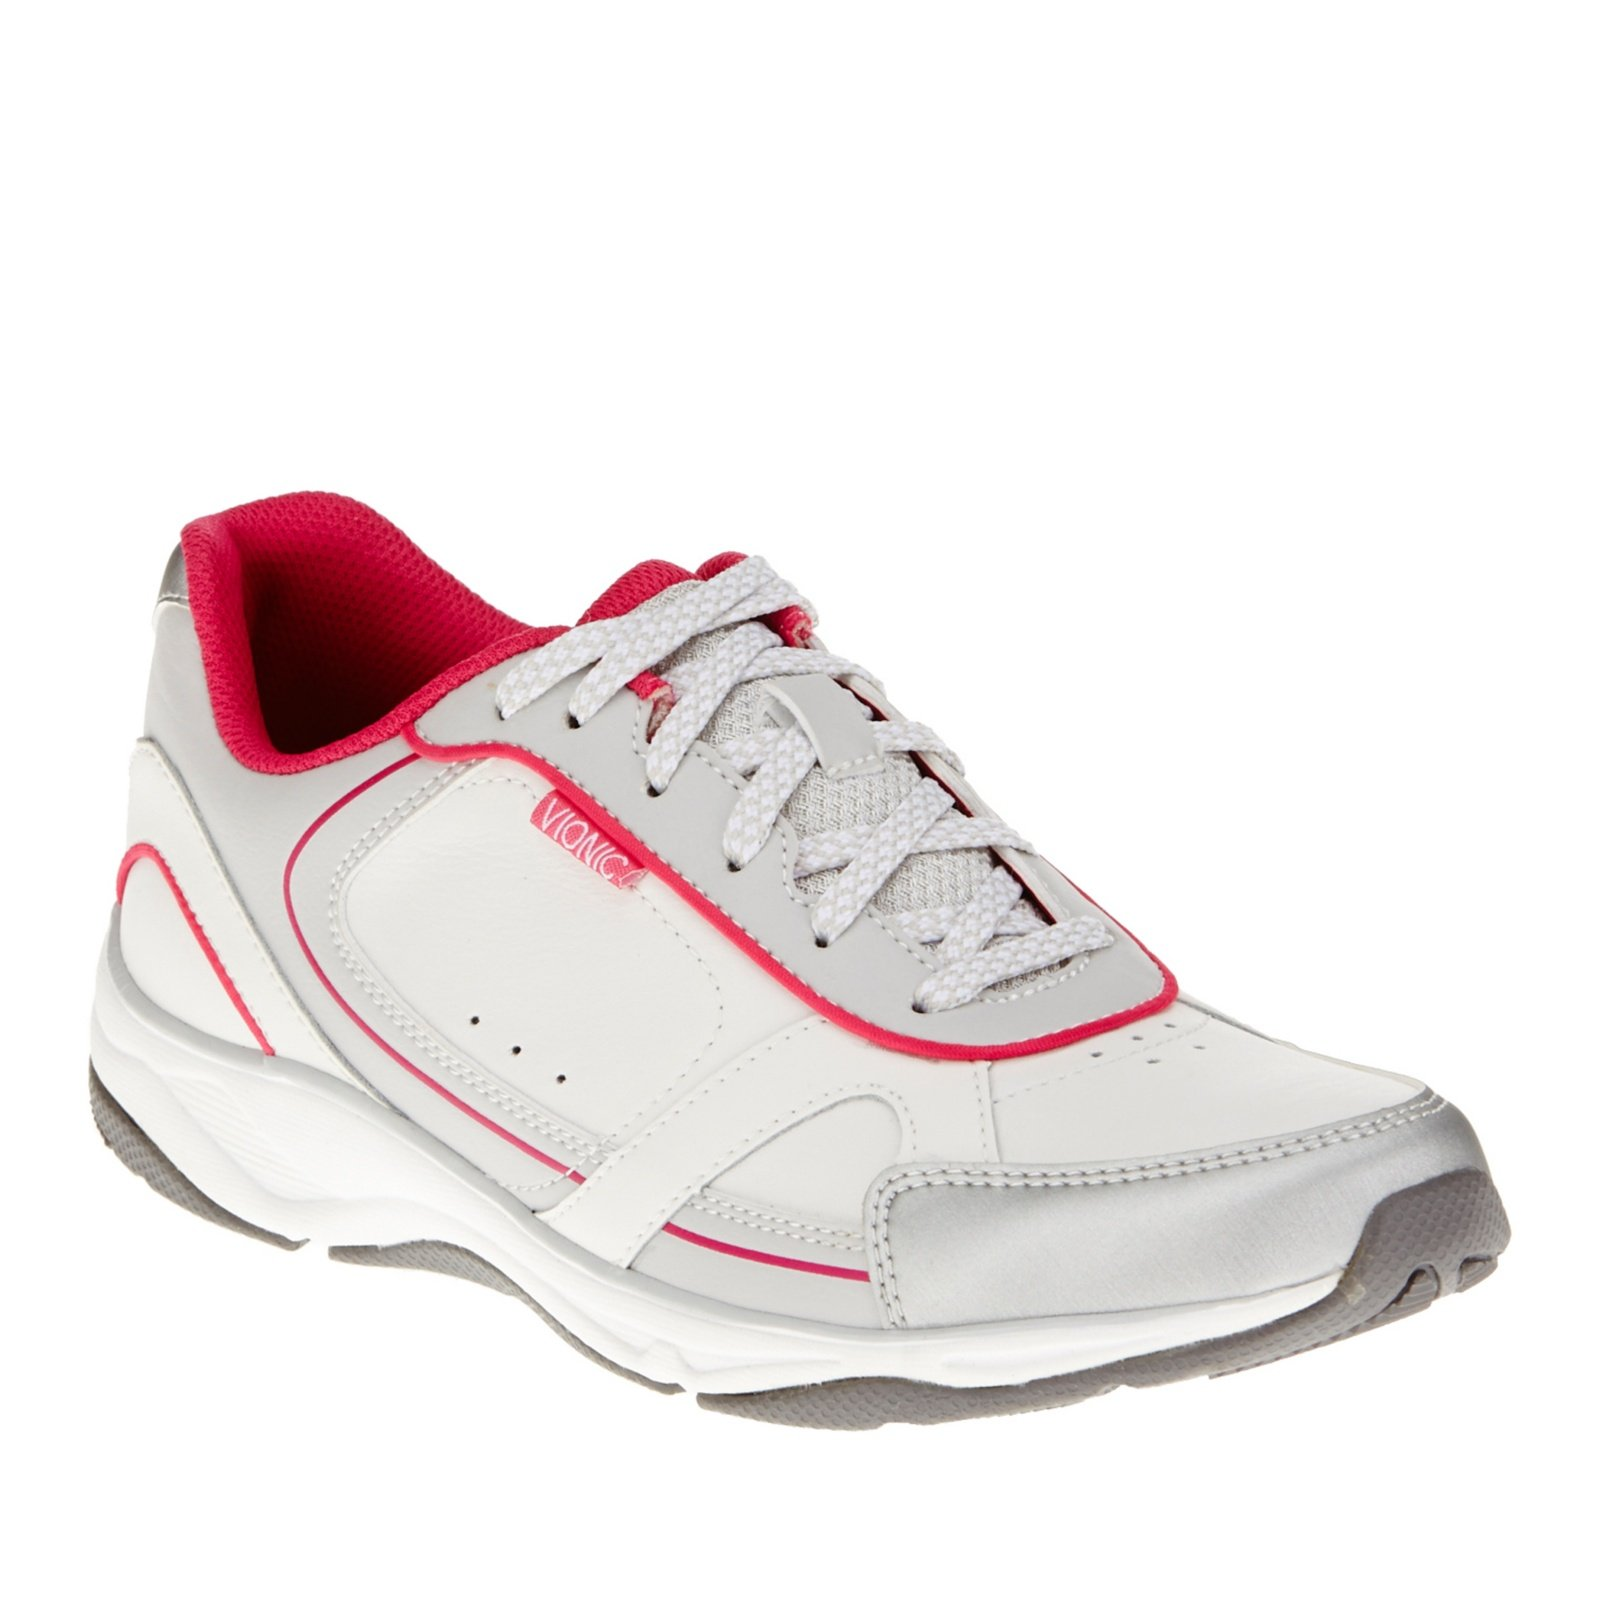 Vionic Zen - Women's Walking Shoes - Orthaheel